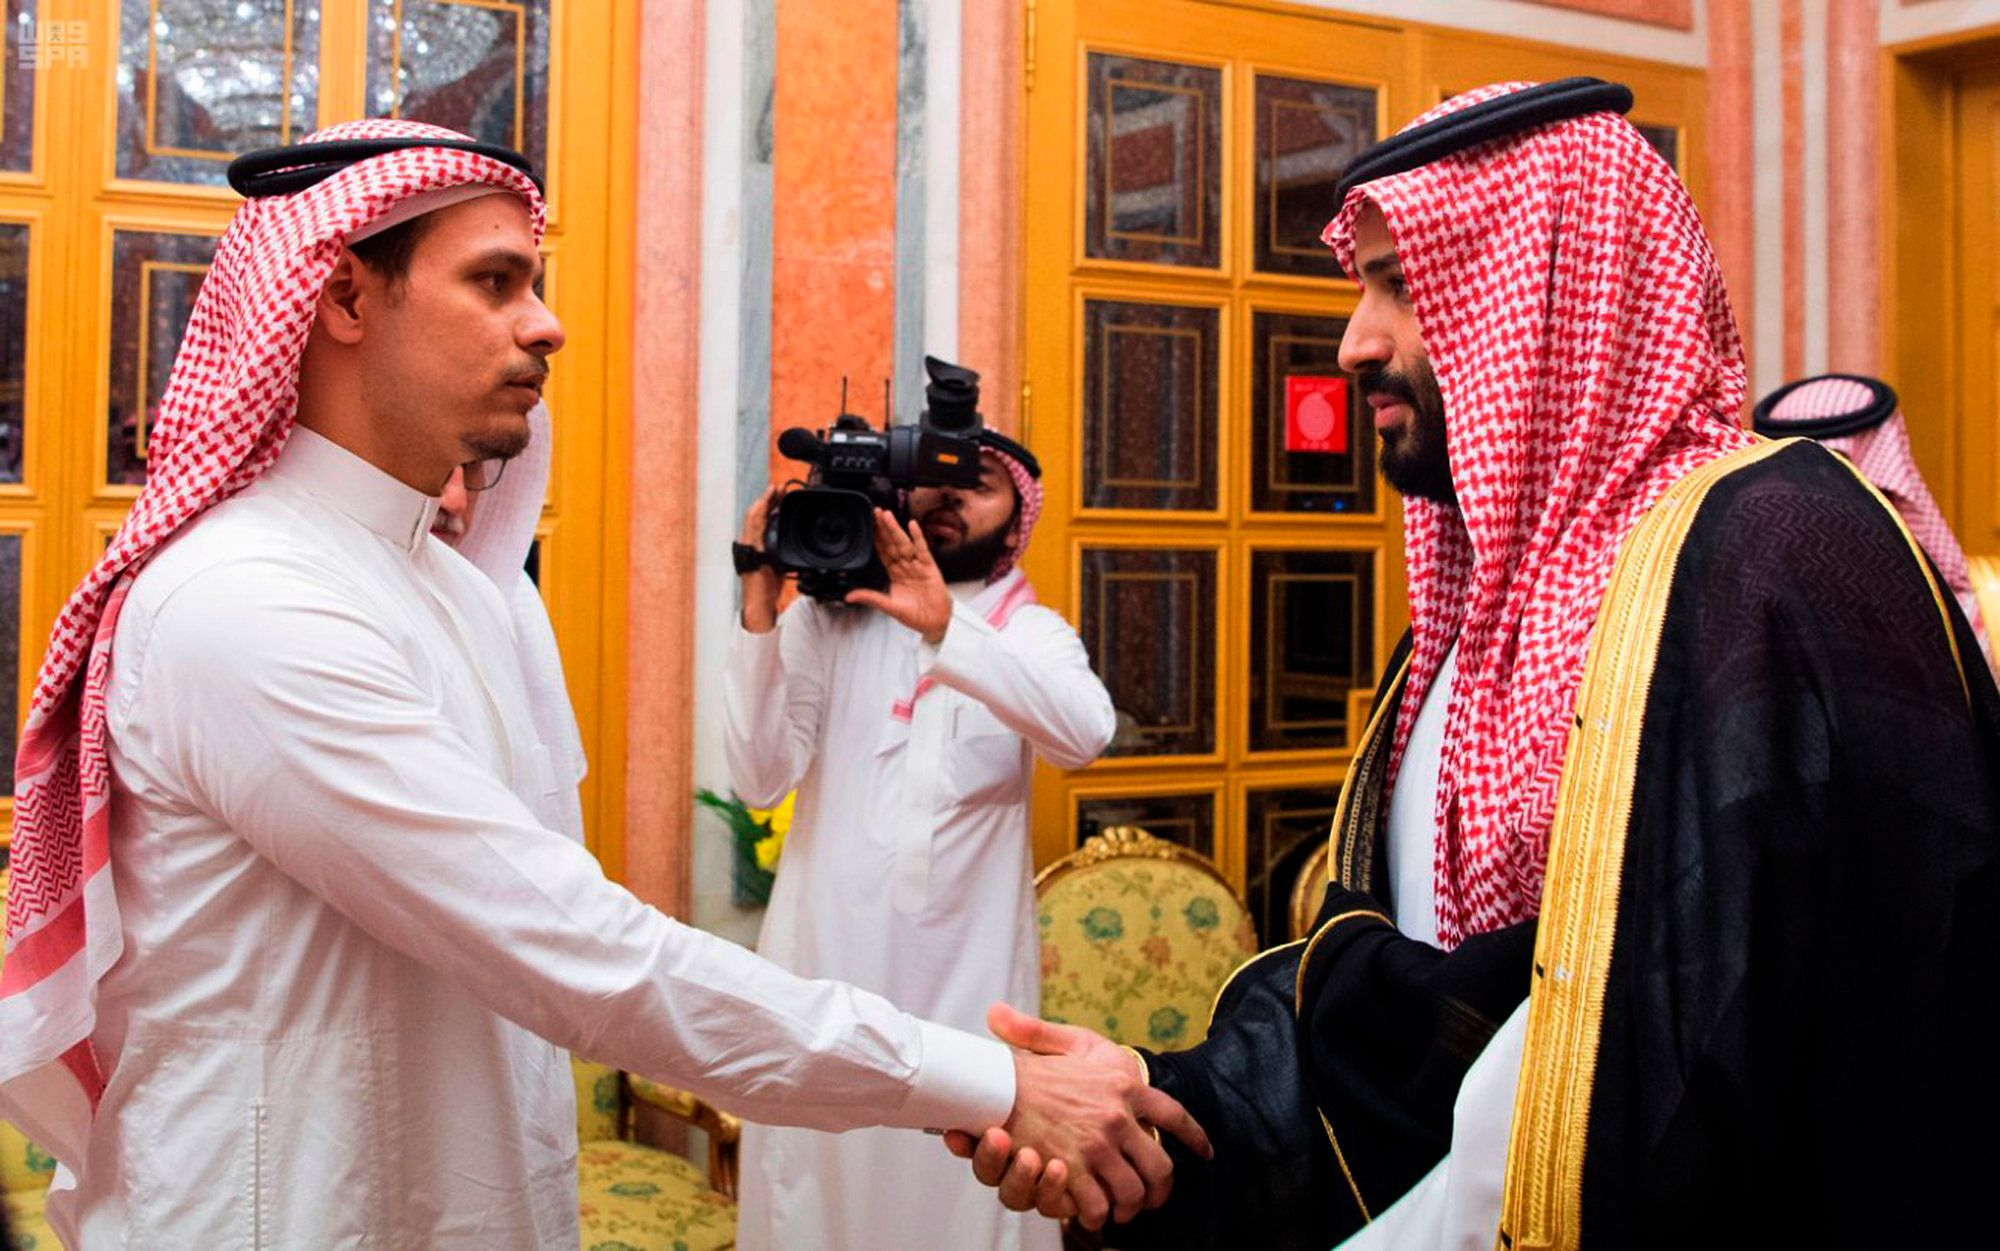 "In this photo released by Saudi Press Agency, SPA, Saudi Crown Prince Mohammed bin Salman, right, shakes hands with Salah Khashoggi, a son, of Jamal Khashoggi, in Riyadh, Saudi Arabia, Tuesday, Oct. 23, 2018. Saudi Arabia, which for weeks maintained that Jamal Khashoggi had left the Istanbul consulate, on Saturday acknowledged he was killed there in a ""fistfight."" (Saudi Press Agency via AP)"